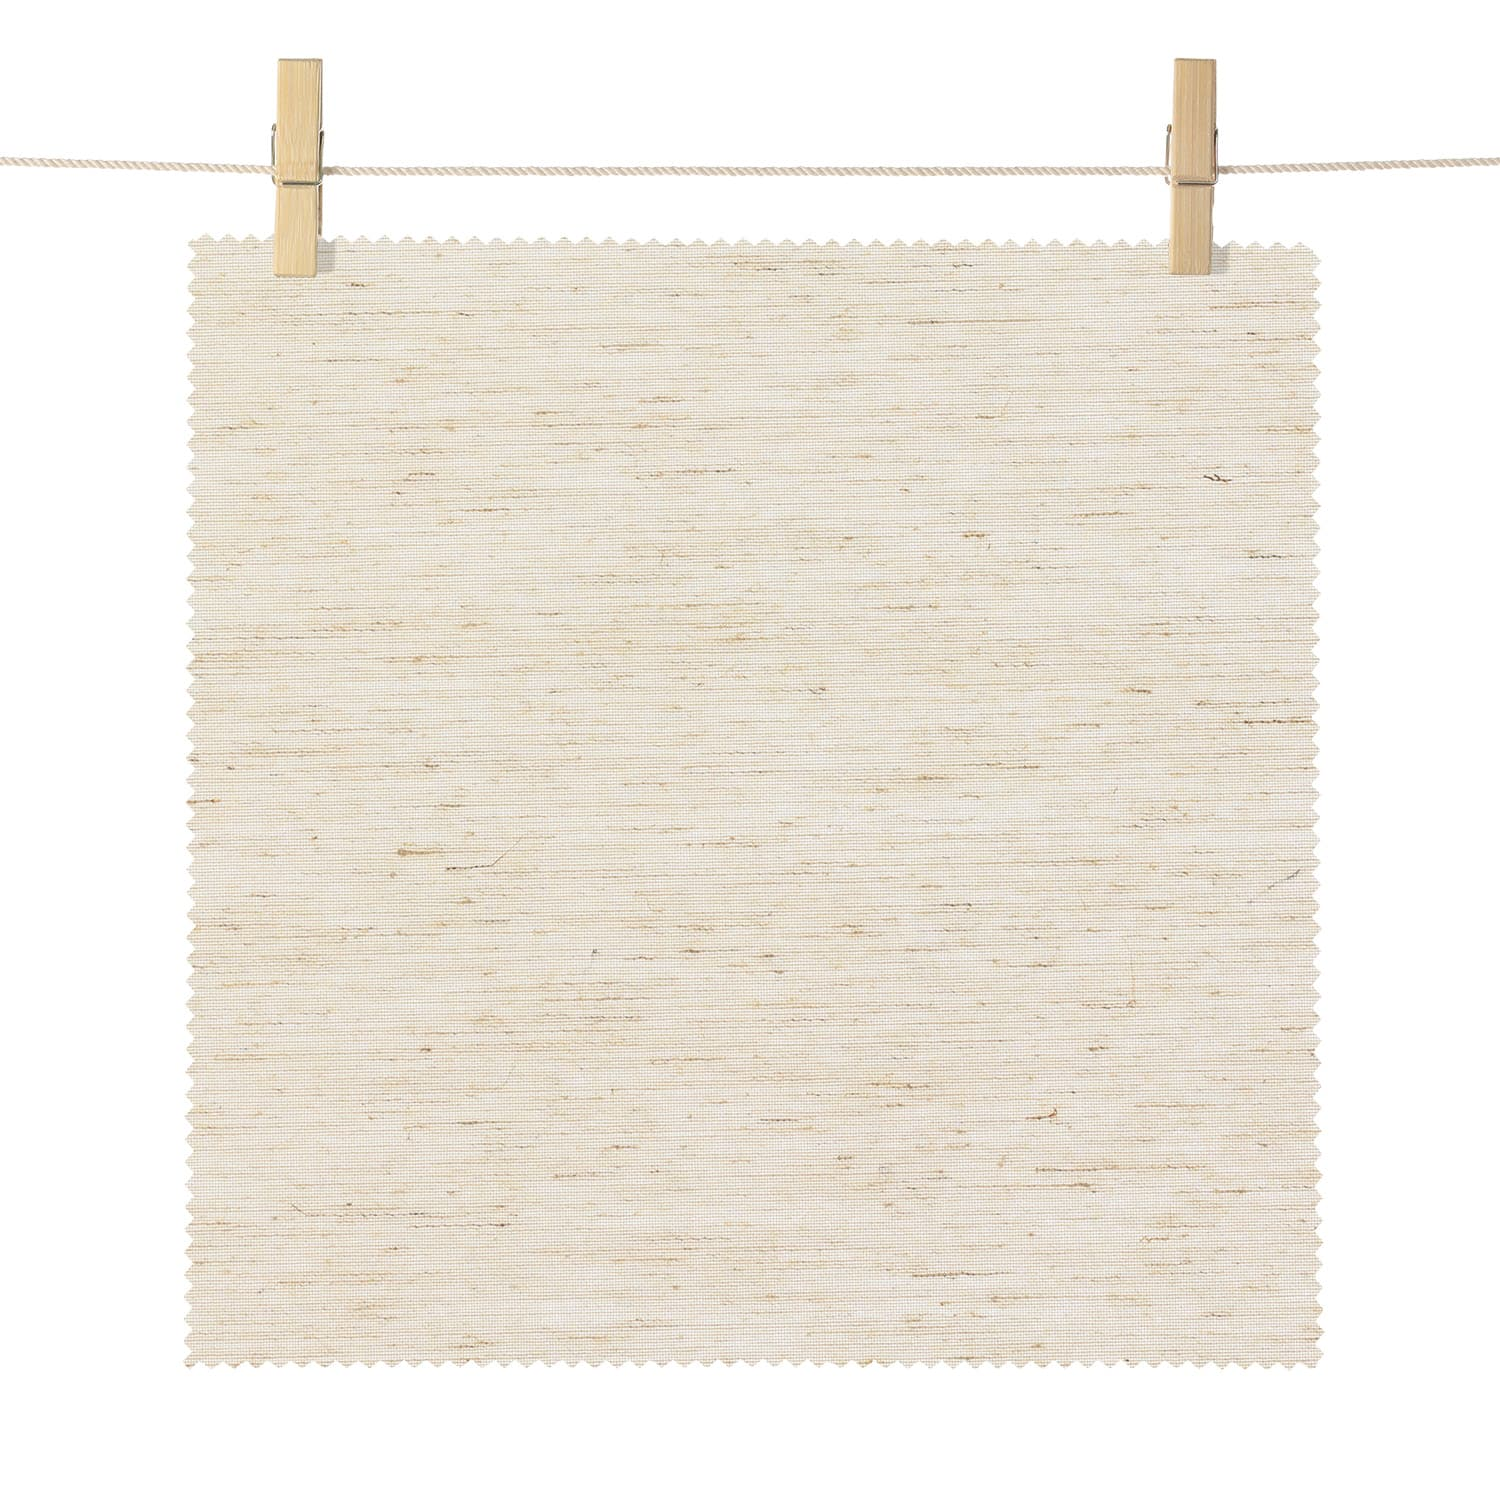 Camden Tan Heathered Hopsack Textured Light Filtering Roller Shade Swatch